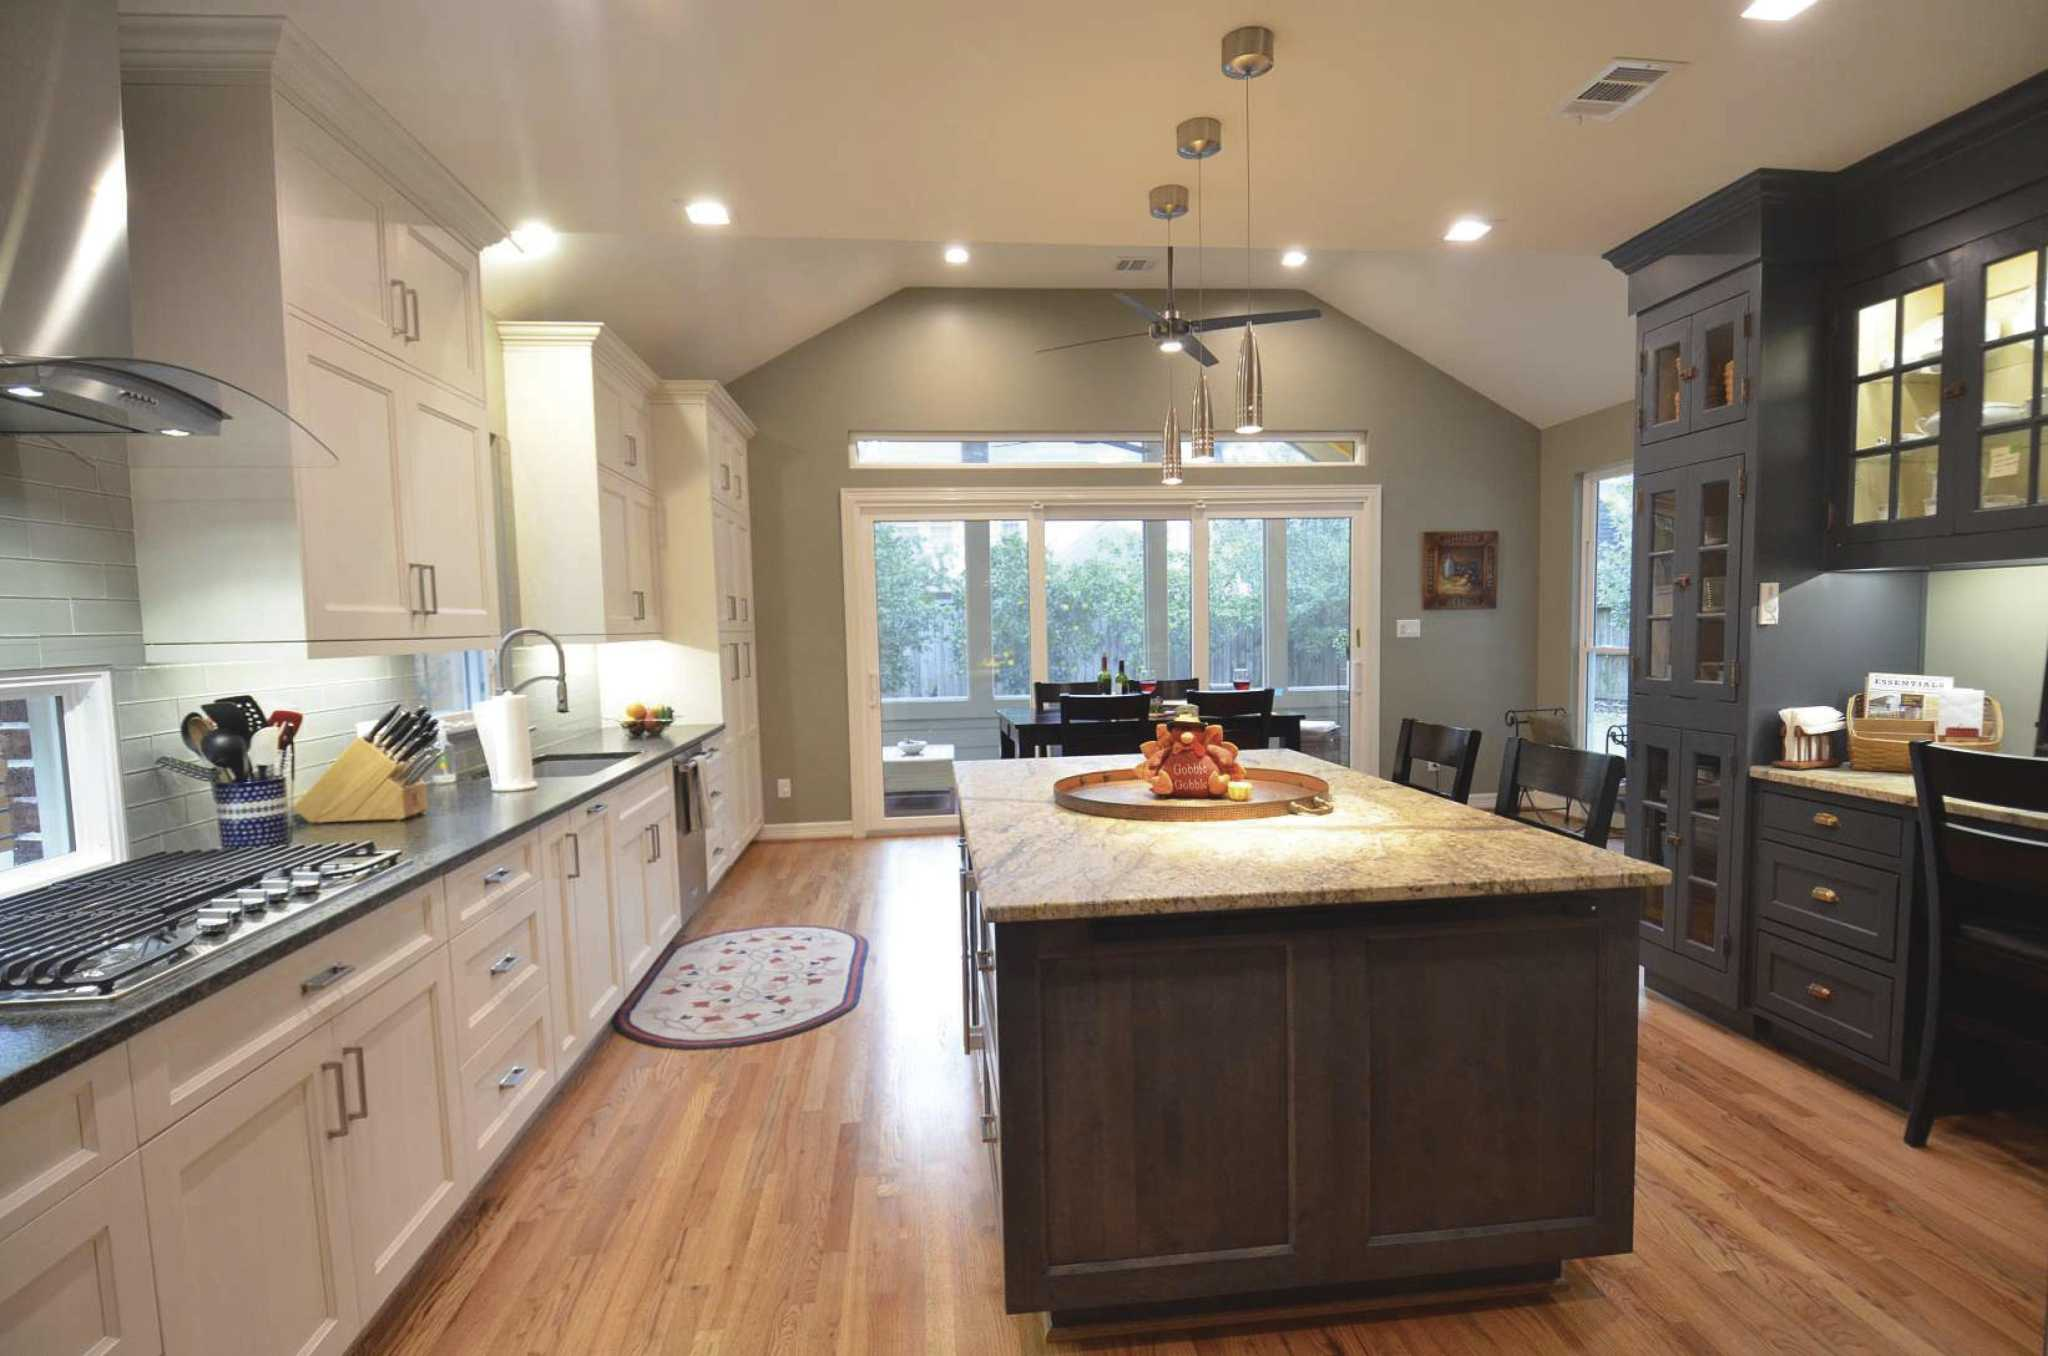 ghba remodelers council: tips for a successful kitchen remodel